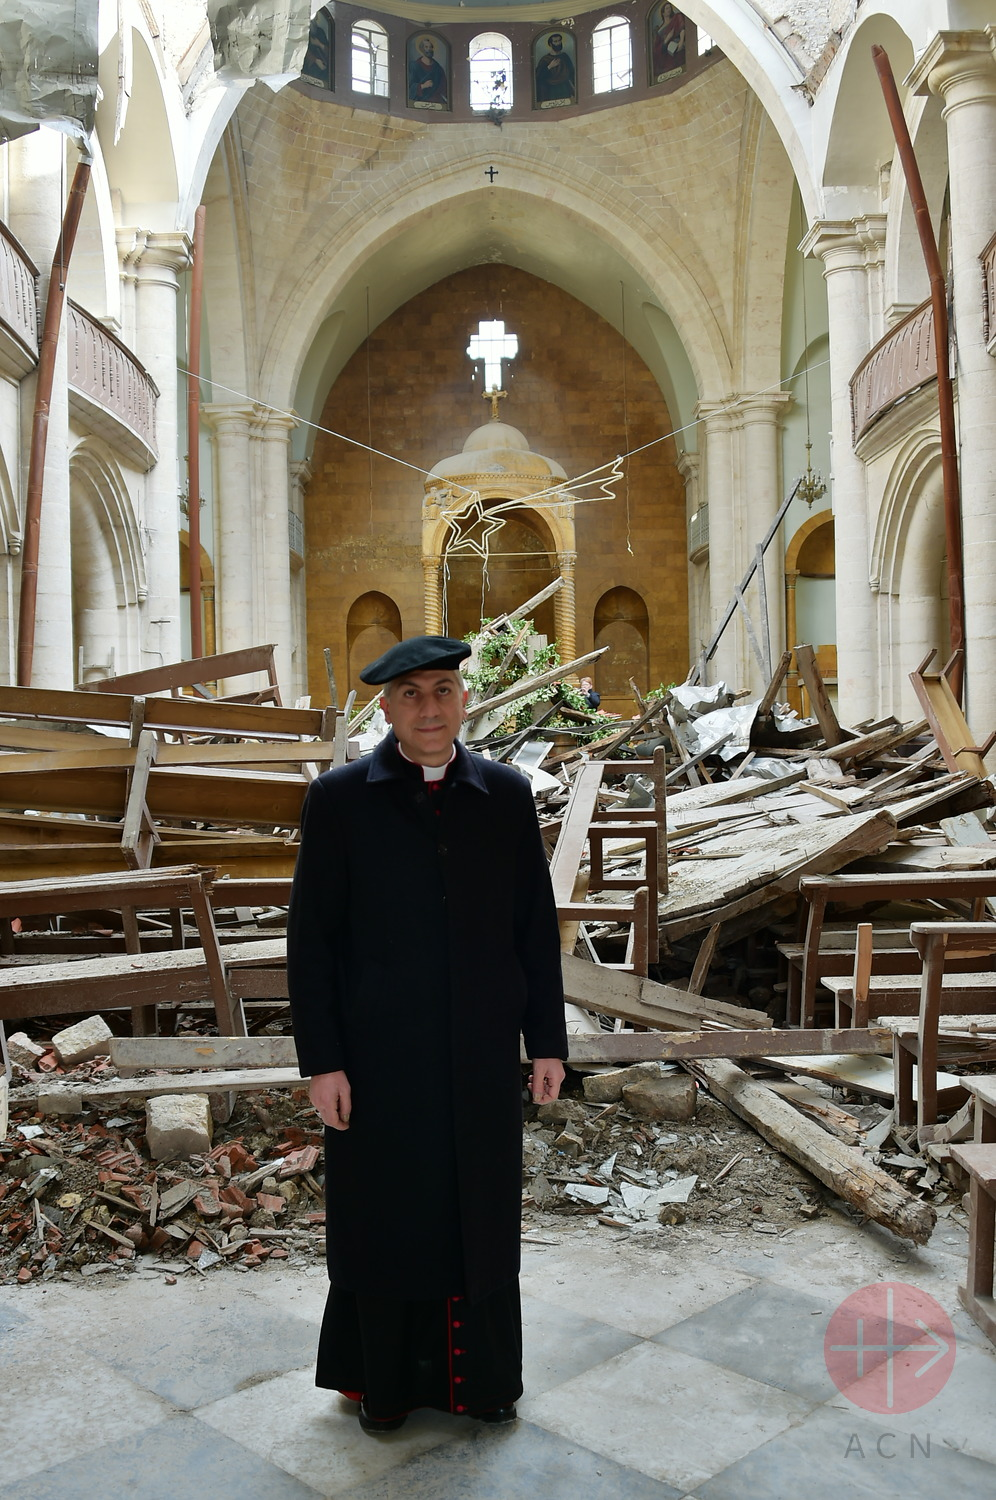 Siria Alepo catedral de San Elías destruida Maronite bishop Joseph Tobji